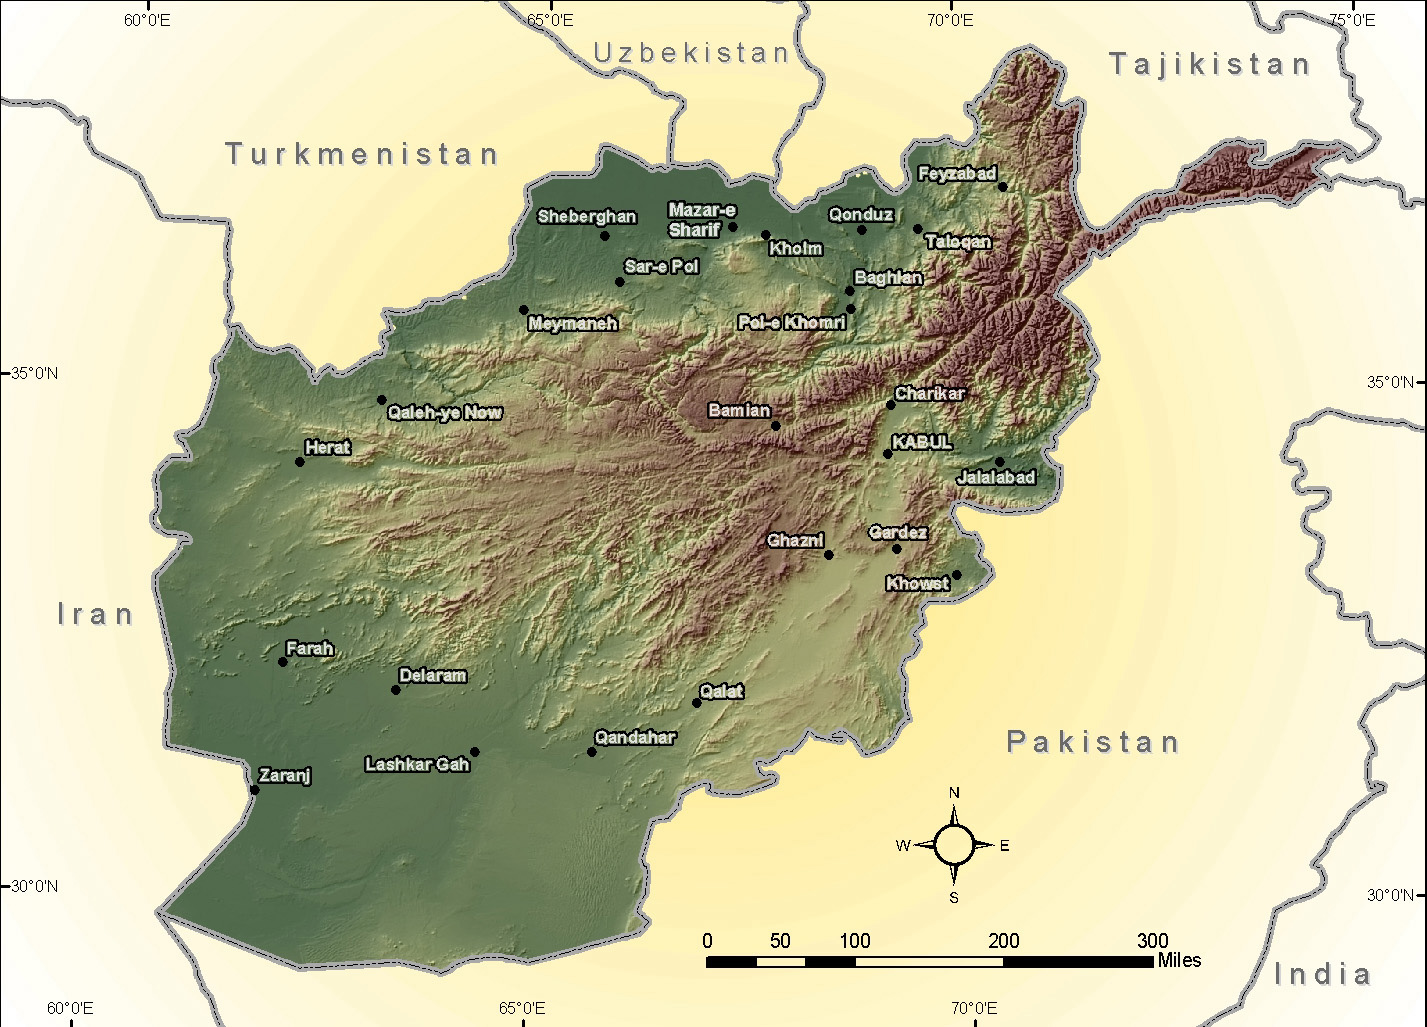 Photographs and Maps re Noshaq 7492m in the Hindu Kush Mountains of Afgha